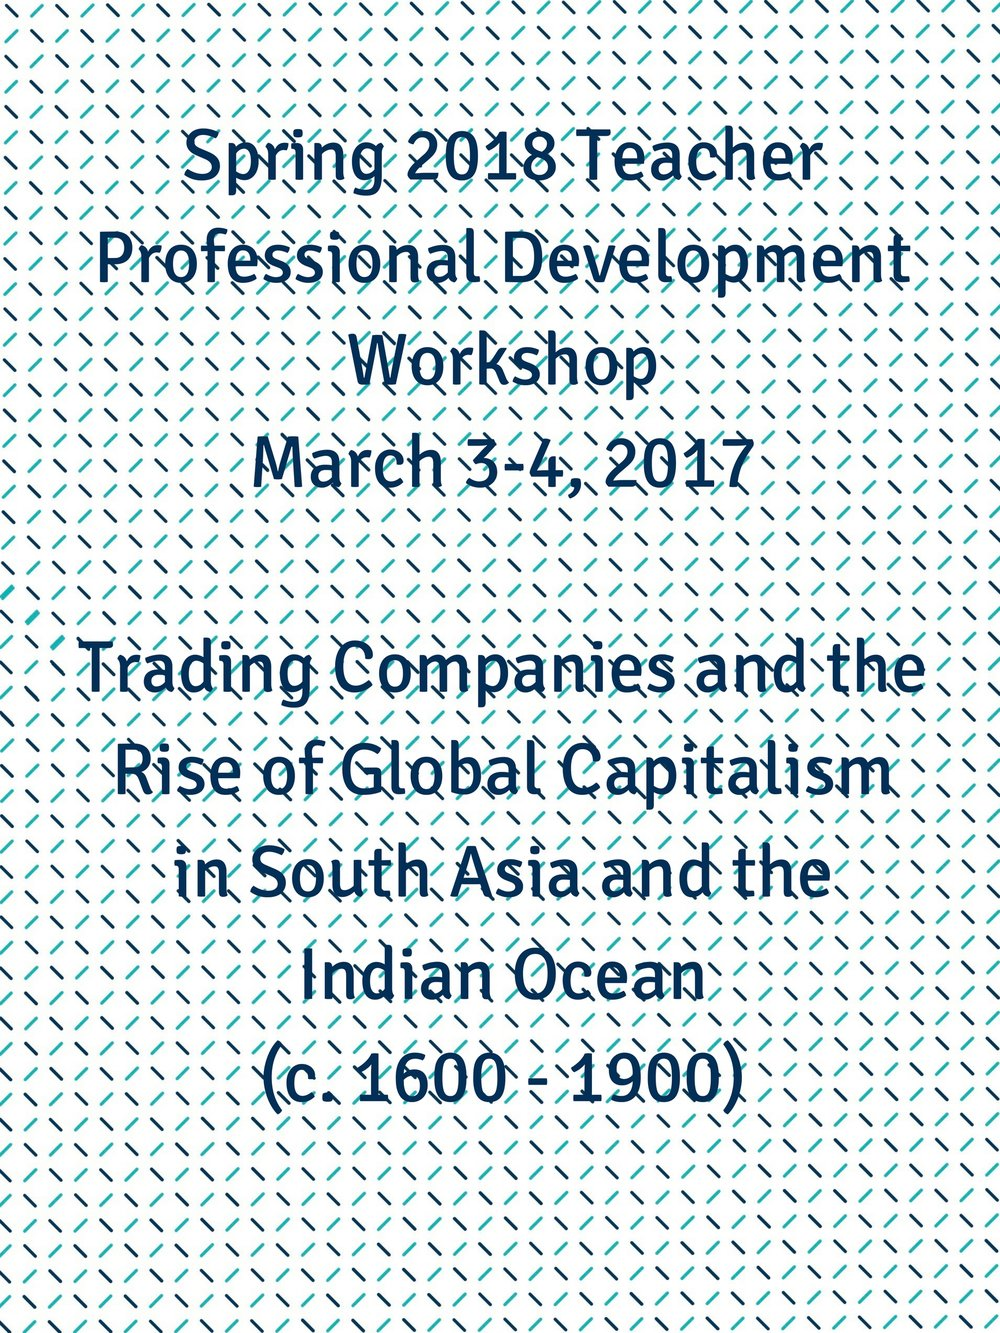 Spring 2018 Teacher Profession Development Workshop, March 3 and 4Trading Companies and the Rise of Global Capitalismin South Asia and the Indian Ocean (c. 1600 - 1900).jpg